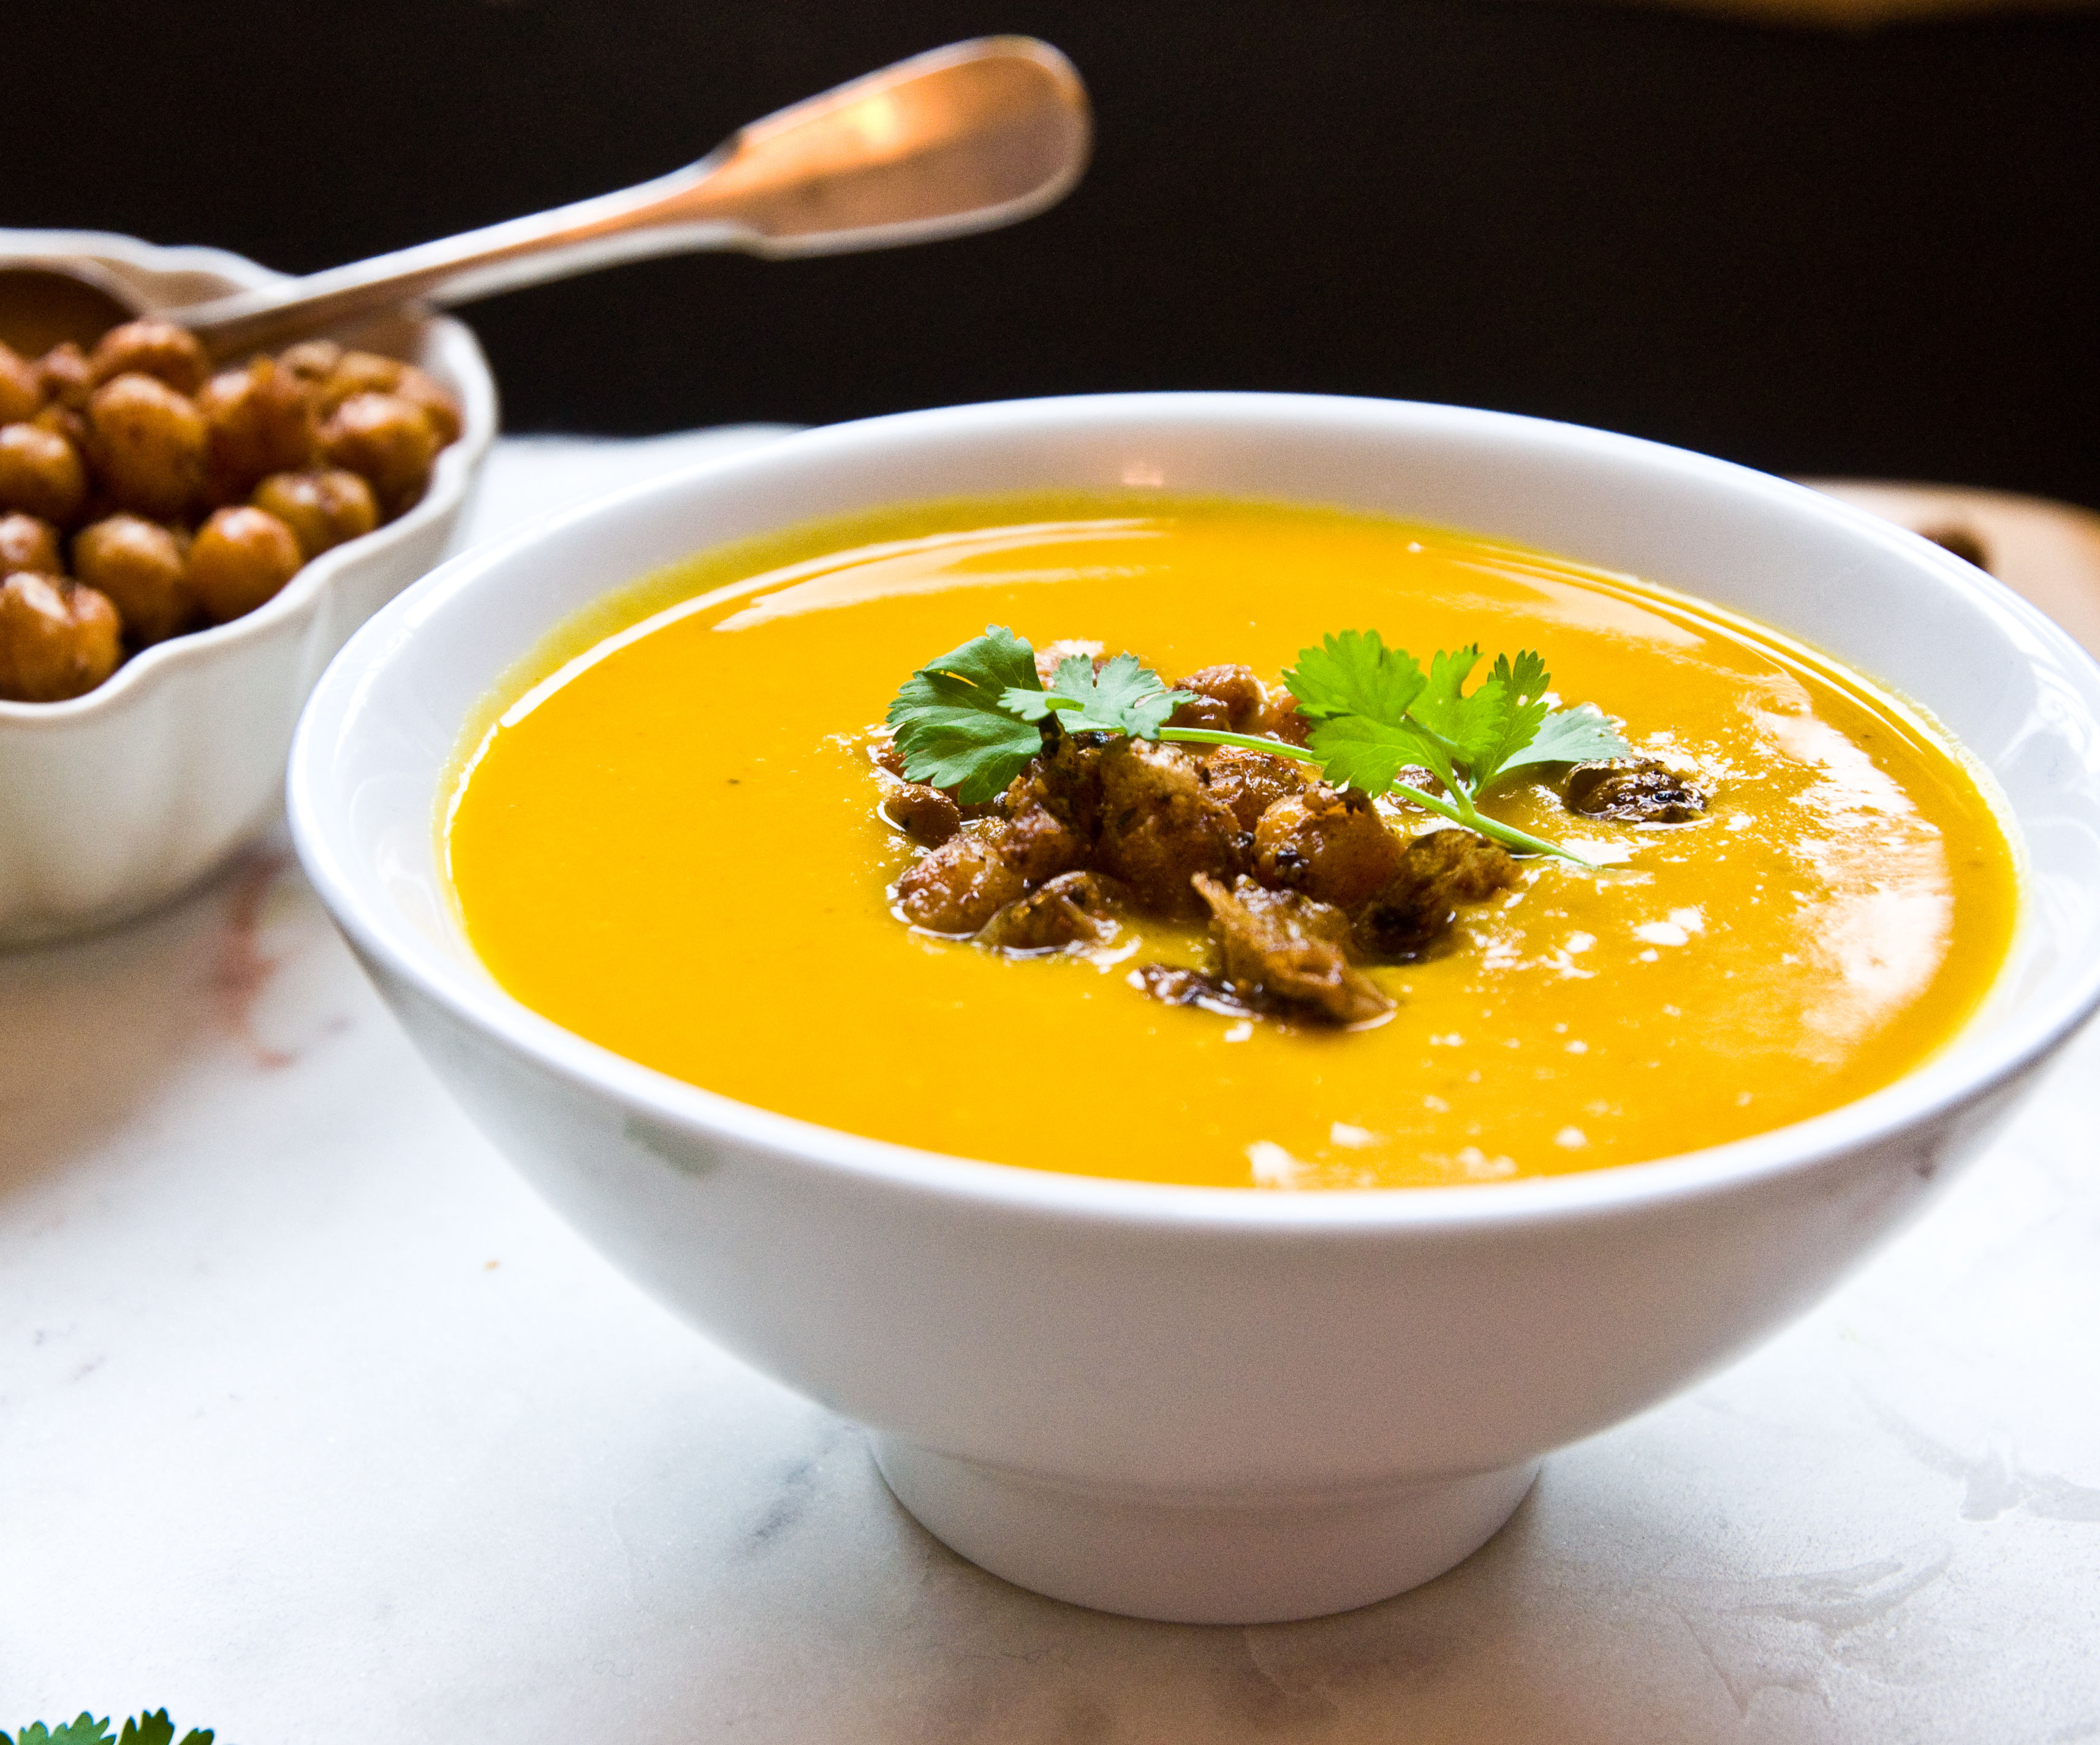 Sweet Potato, Turmeric & Coconut Soup with Chickpea Croutons